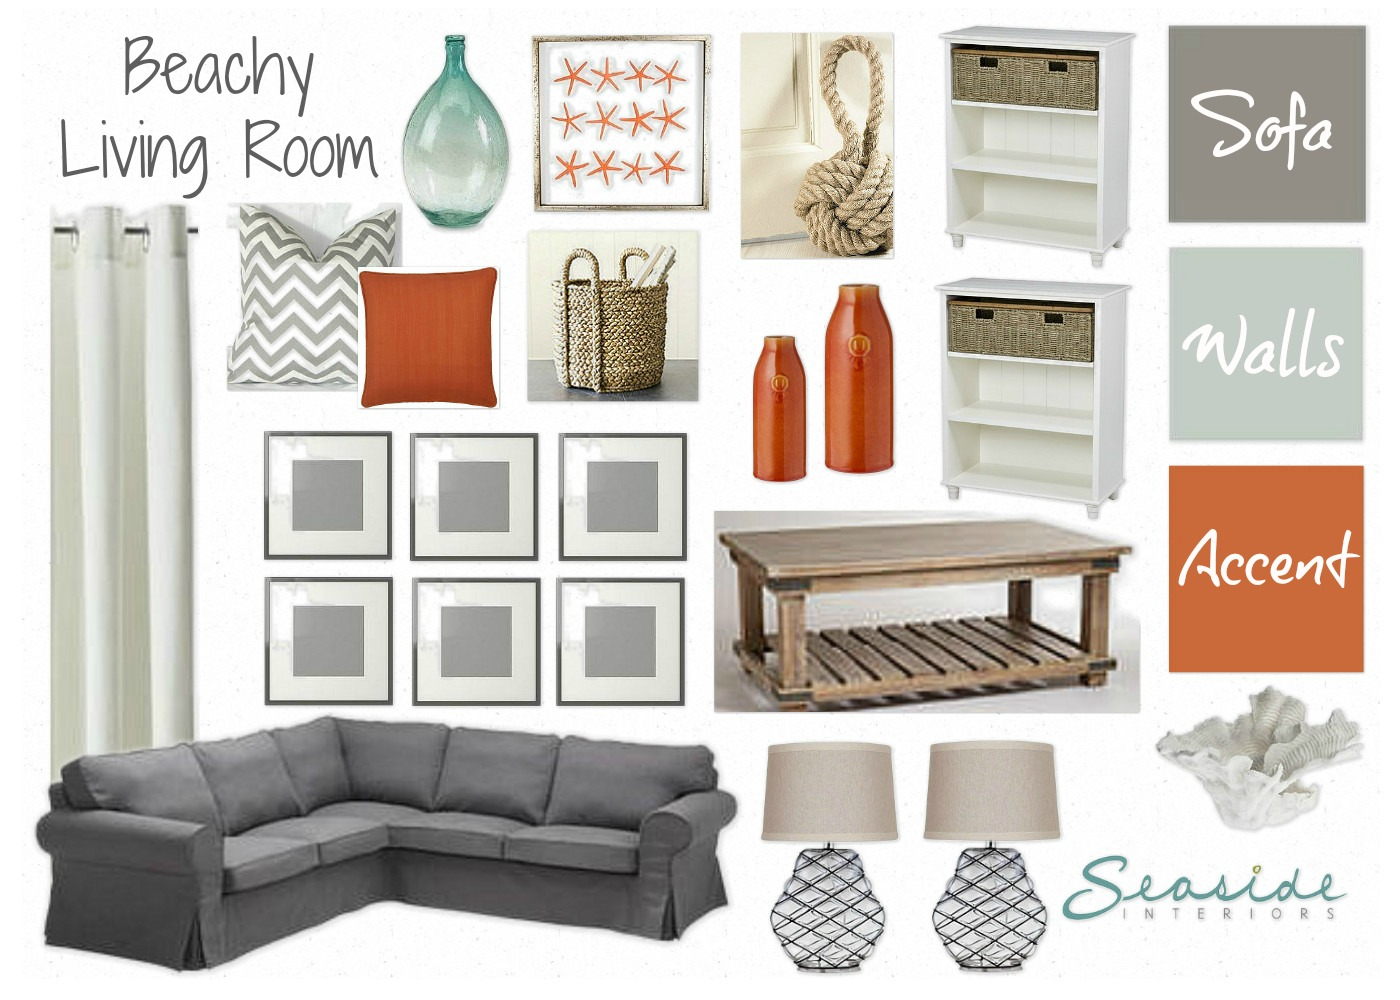 Seaside Interiors: Beachy Living Room with grays and orange!!!